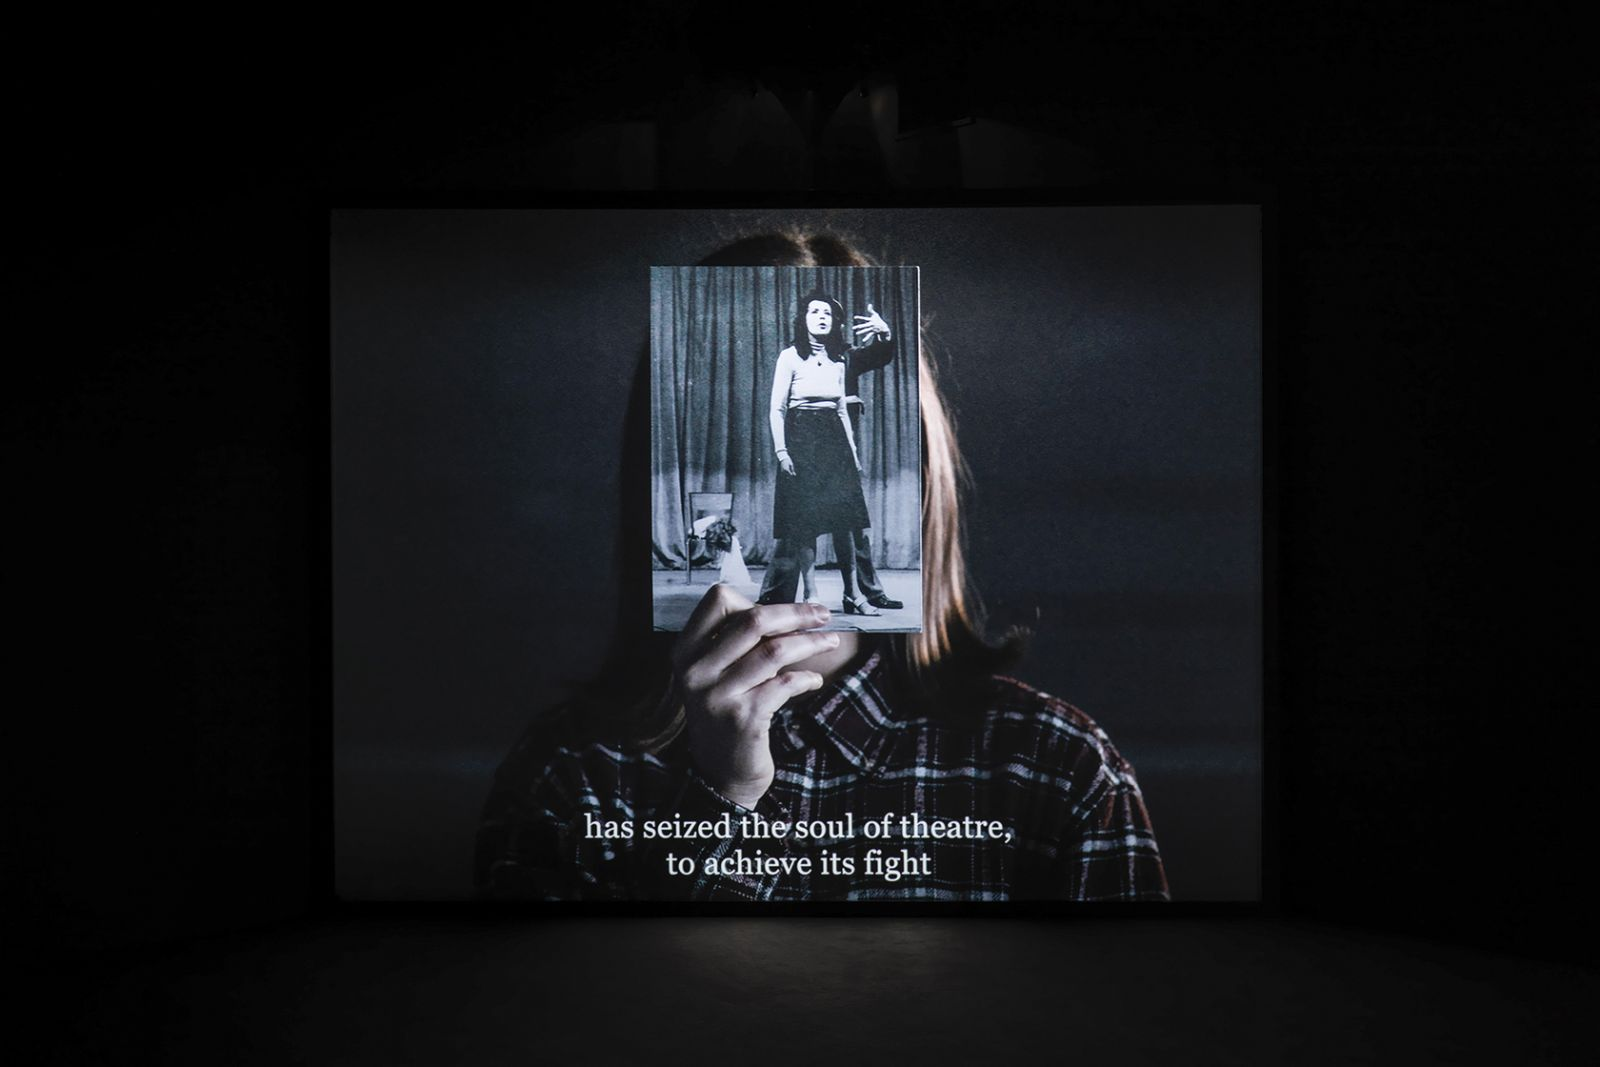 Brexit spøger på Kunsthal Charlottenborgs nye udstilling</br>Bouchra Khalili, The Tempest Society, 2017. Digital film, 60'. Commissioned for documenta 14. View at documenta 14, ASFA, Athens.</br>Foto: Photo by Stathis Mamalakis. Courtesy of the artist.